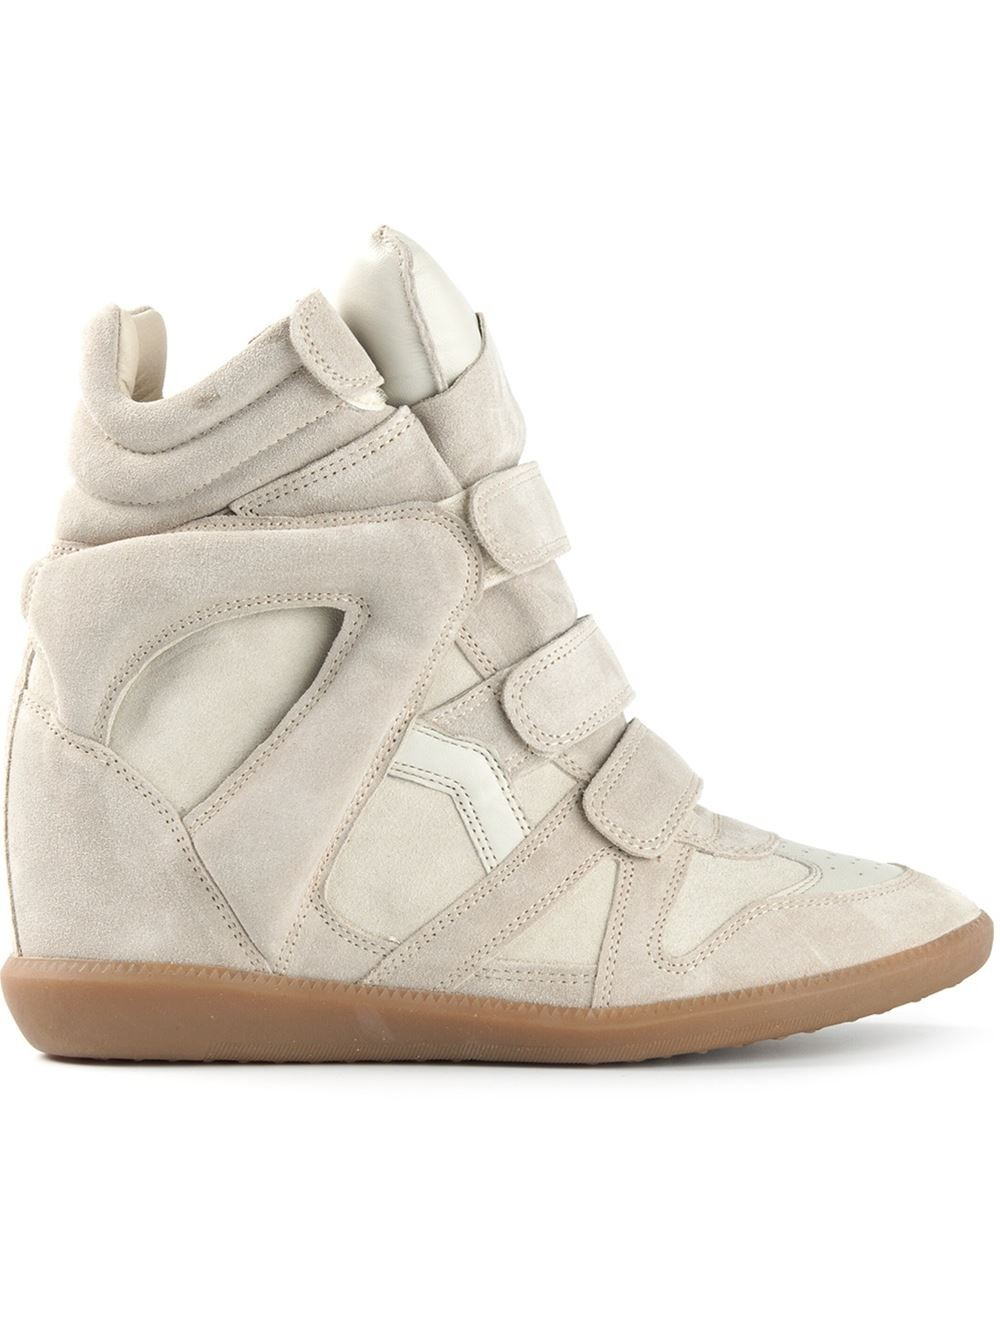 Isabel Marant Bekett Hi-Top White Women's Wedge Sneakers